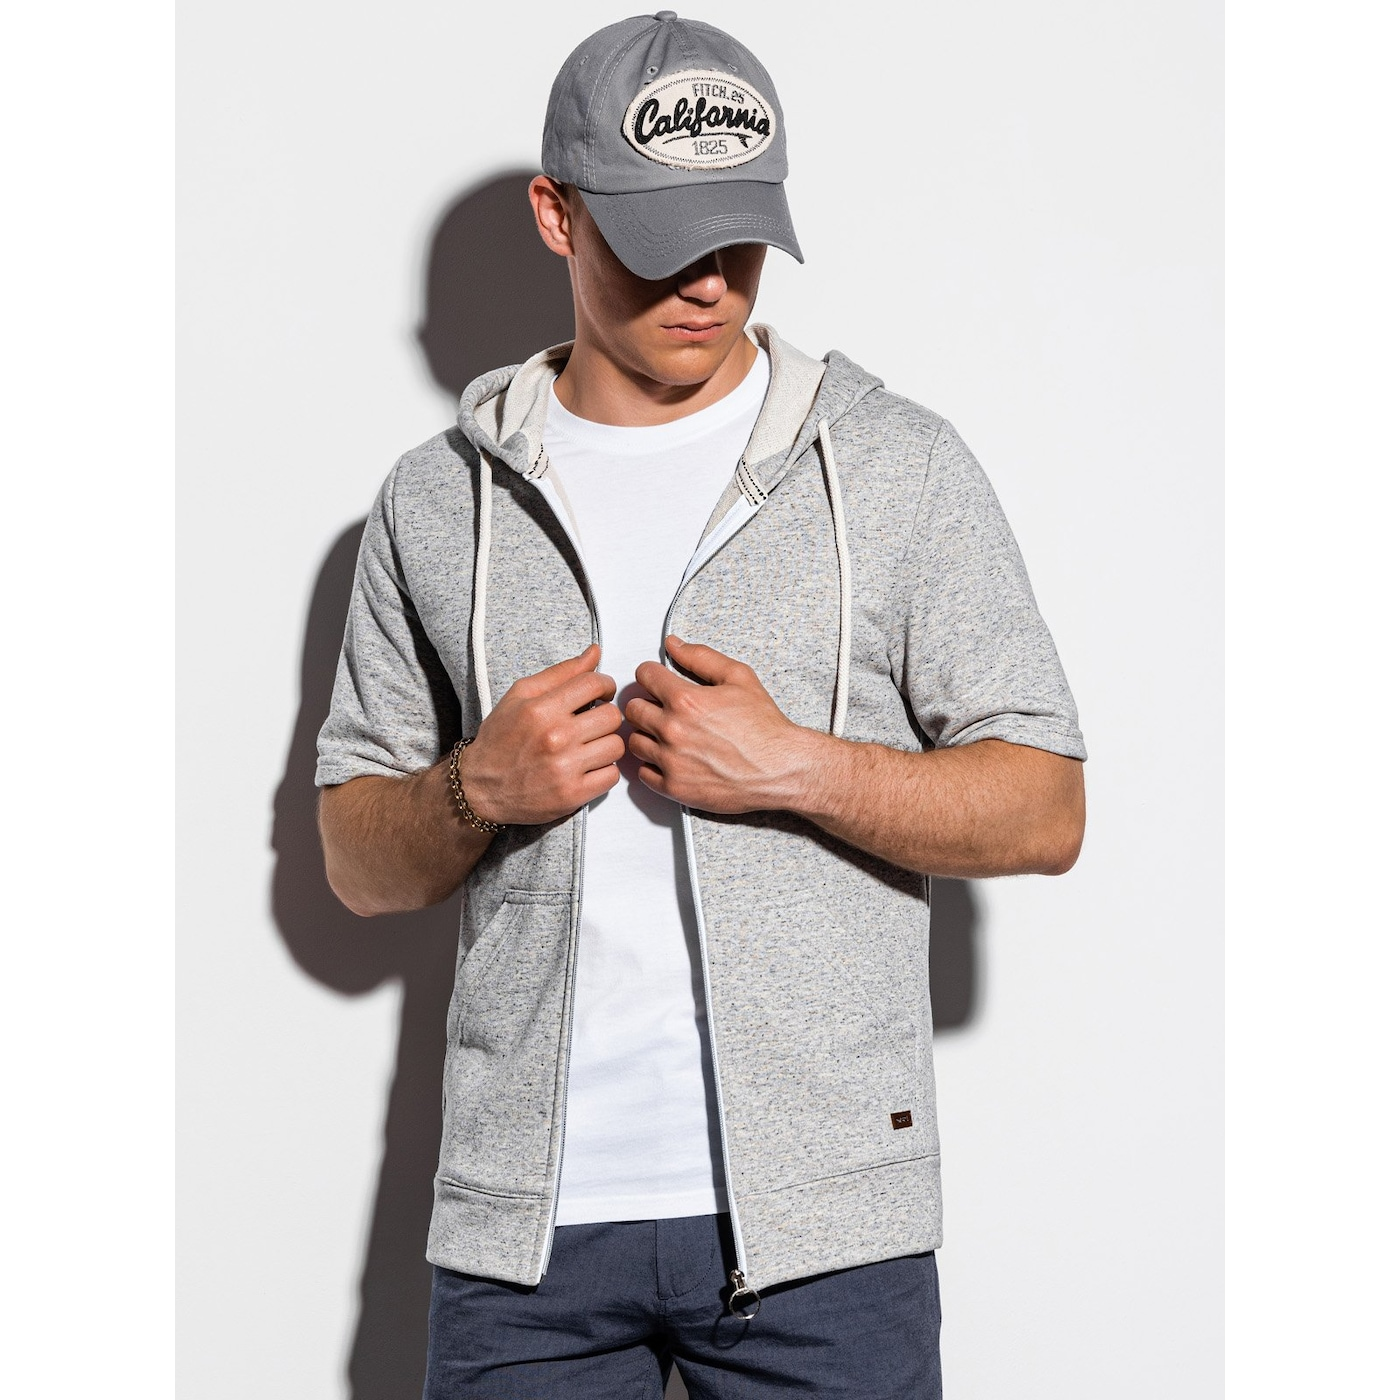 Ombre Clothing Men's hoodie with short sleeves B1068